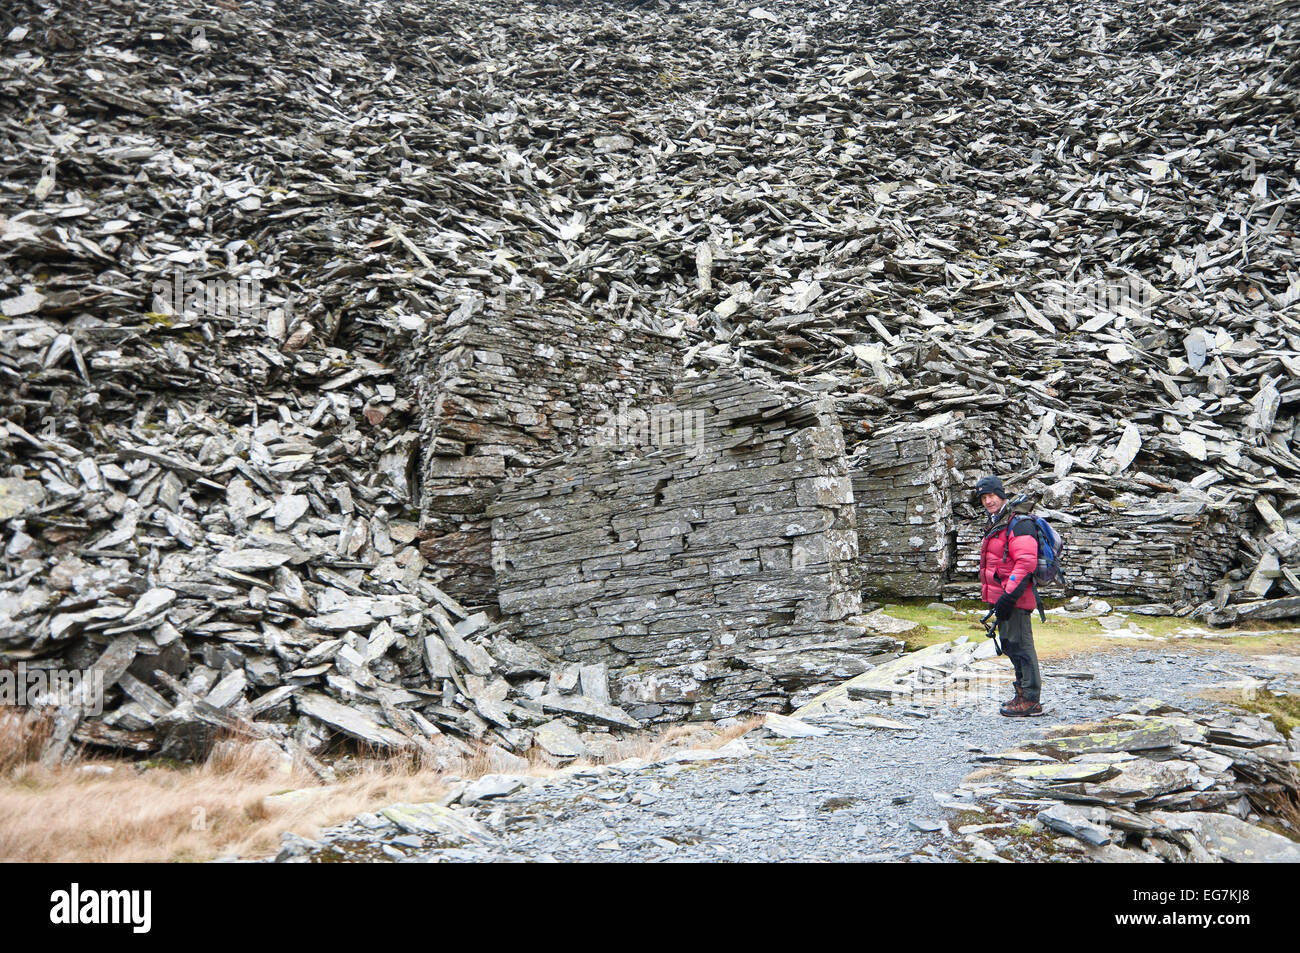 Snowdonia National Park, Gwynedd, Wales, UK. 17th February, 2015. A hiker visits the abandoned Rhosydd Slate Quarry Stock Photo